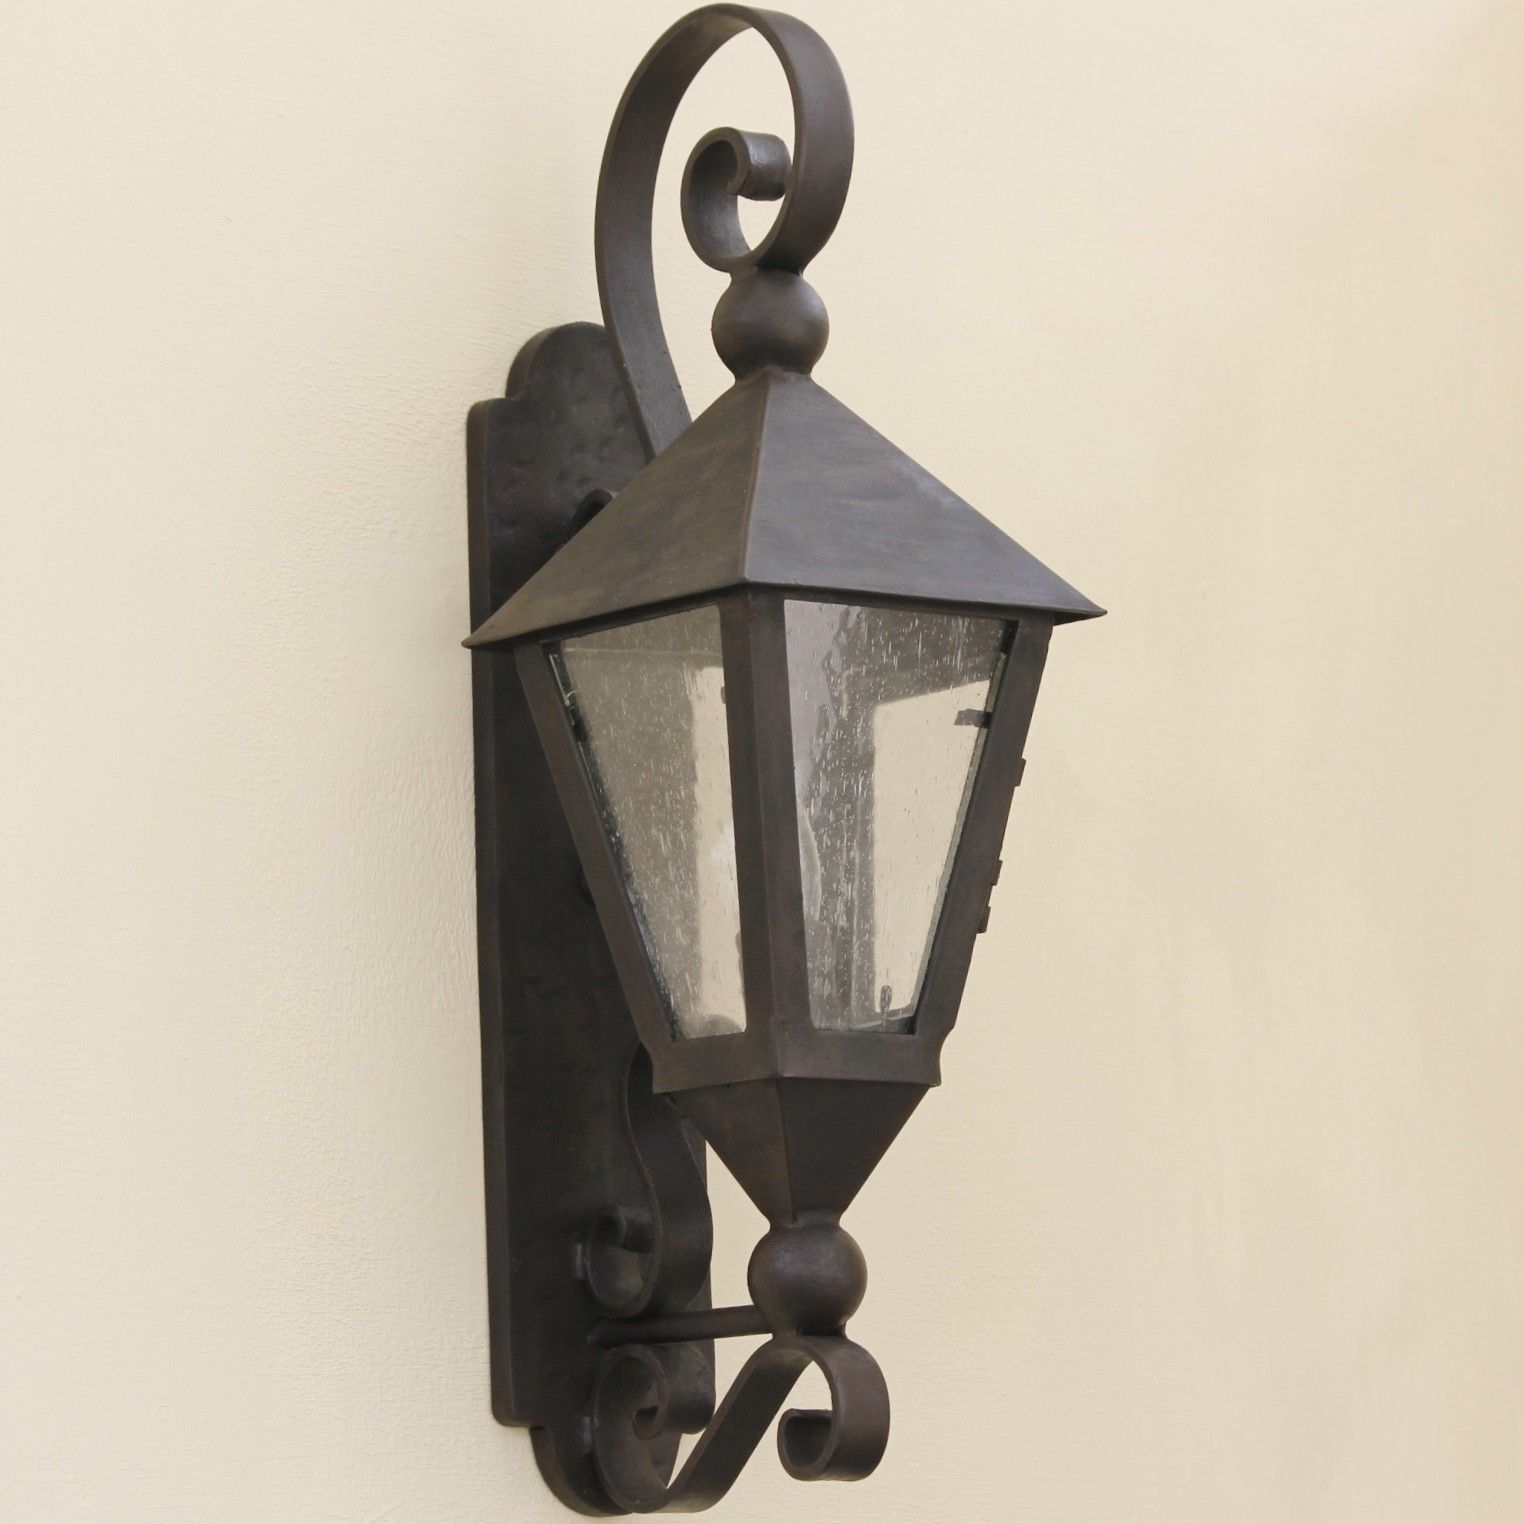 Tuscan Spanish Style Outdoor Lighting Fixture In